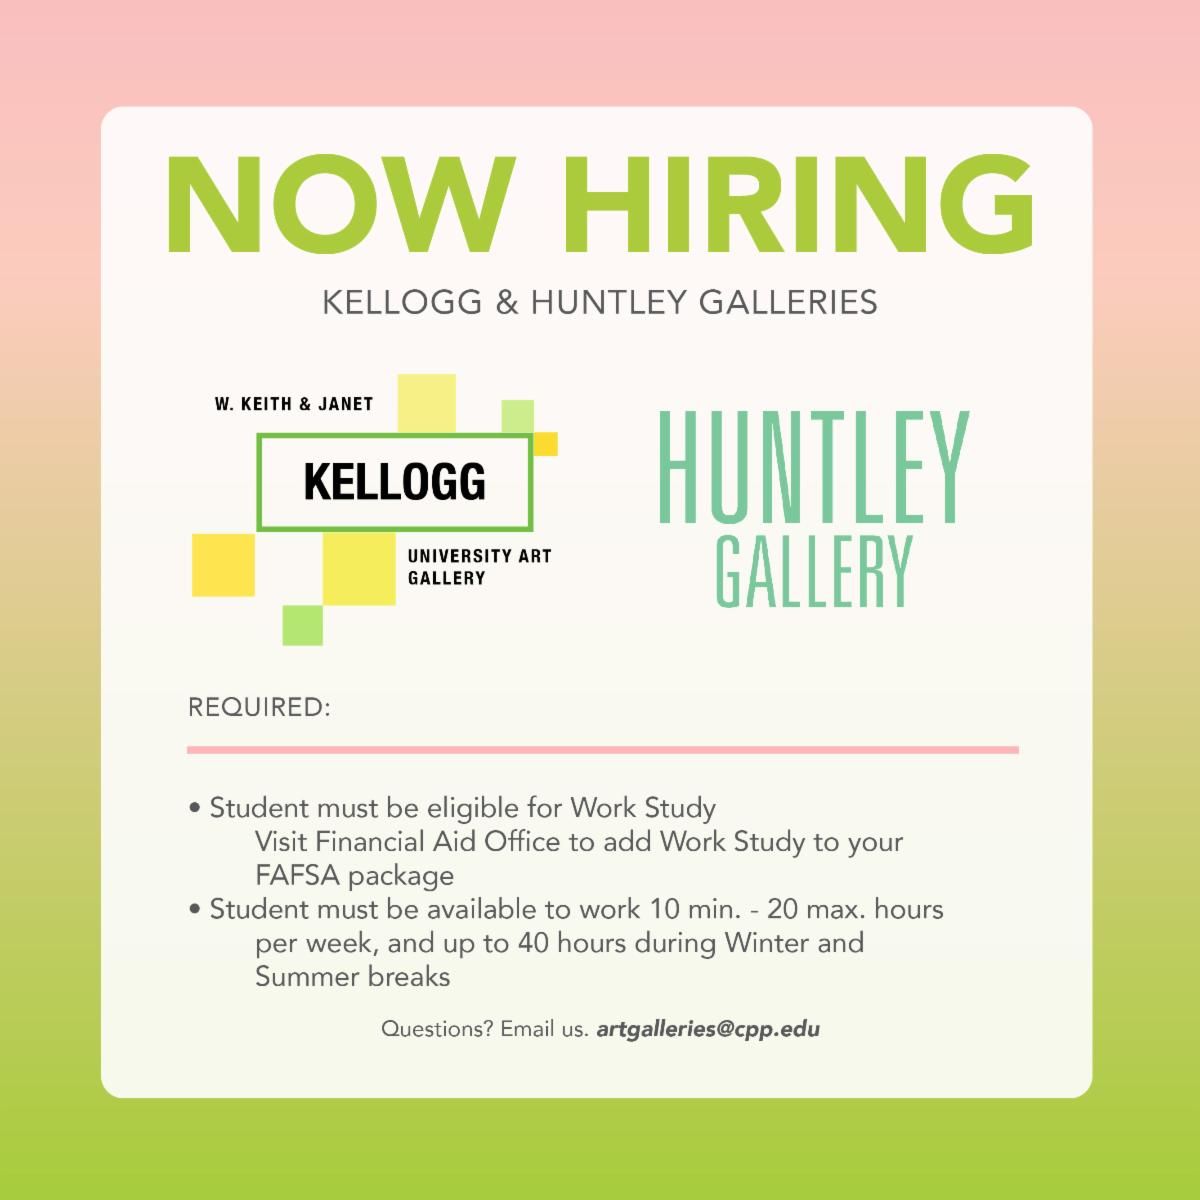 now hiring at the university art galleries